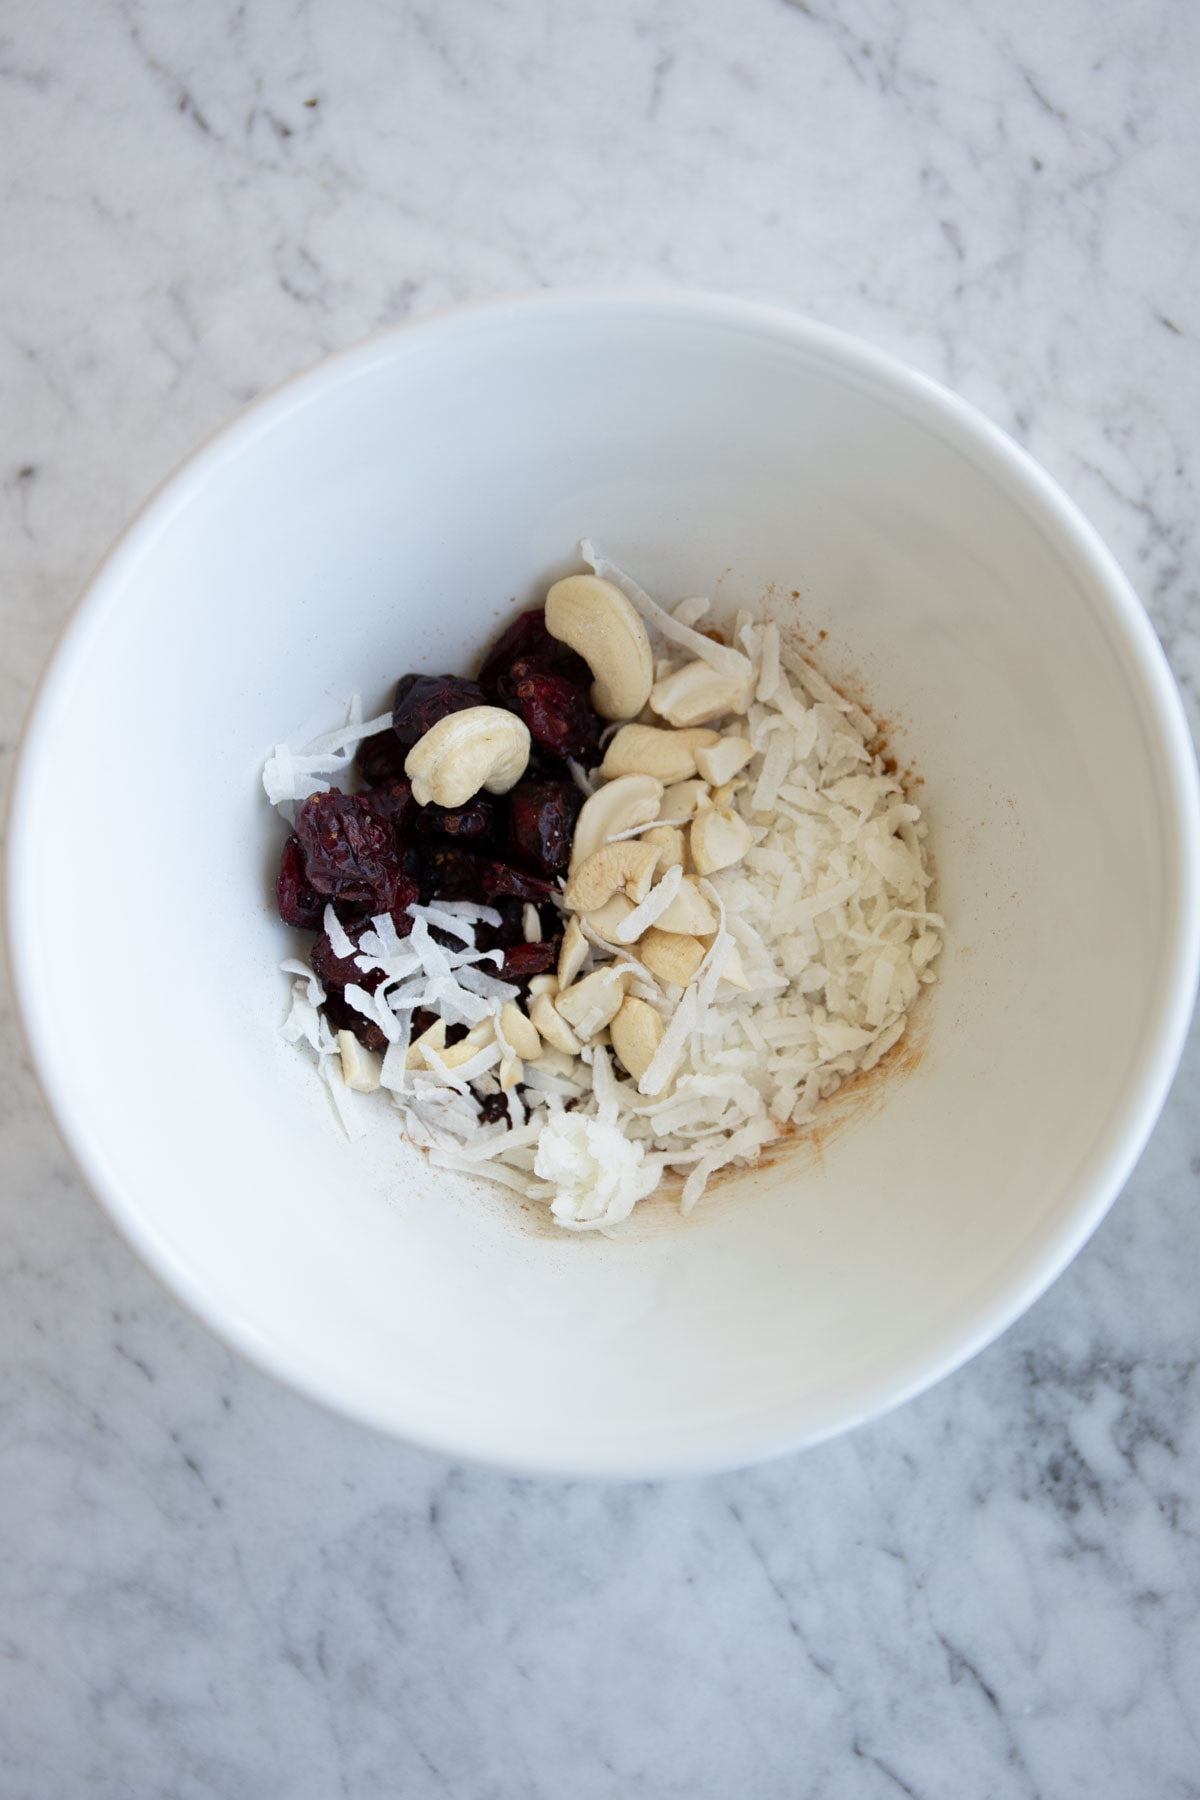 cashews, cranberries, and shredded coconut in a bowl